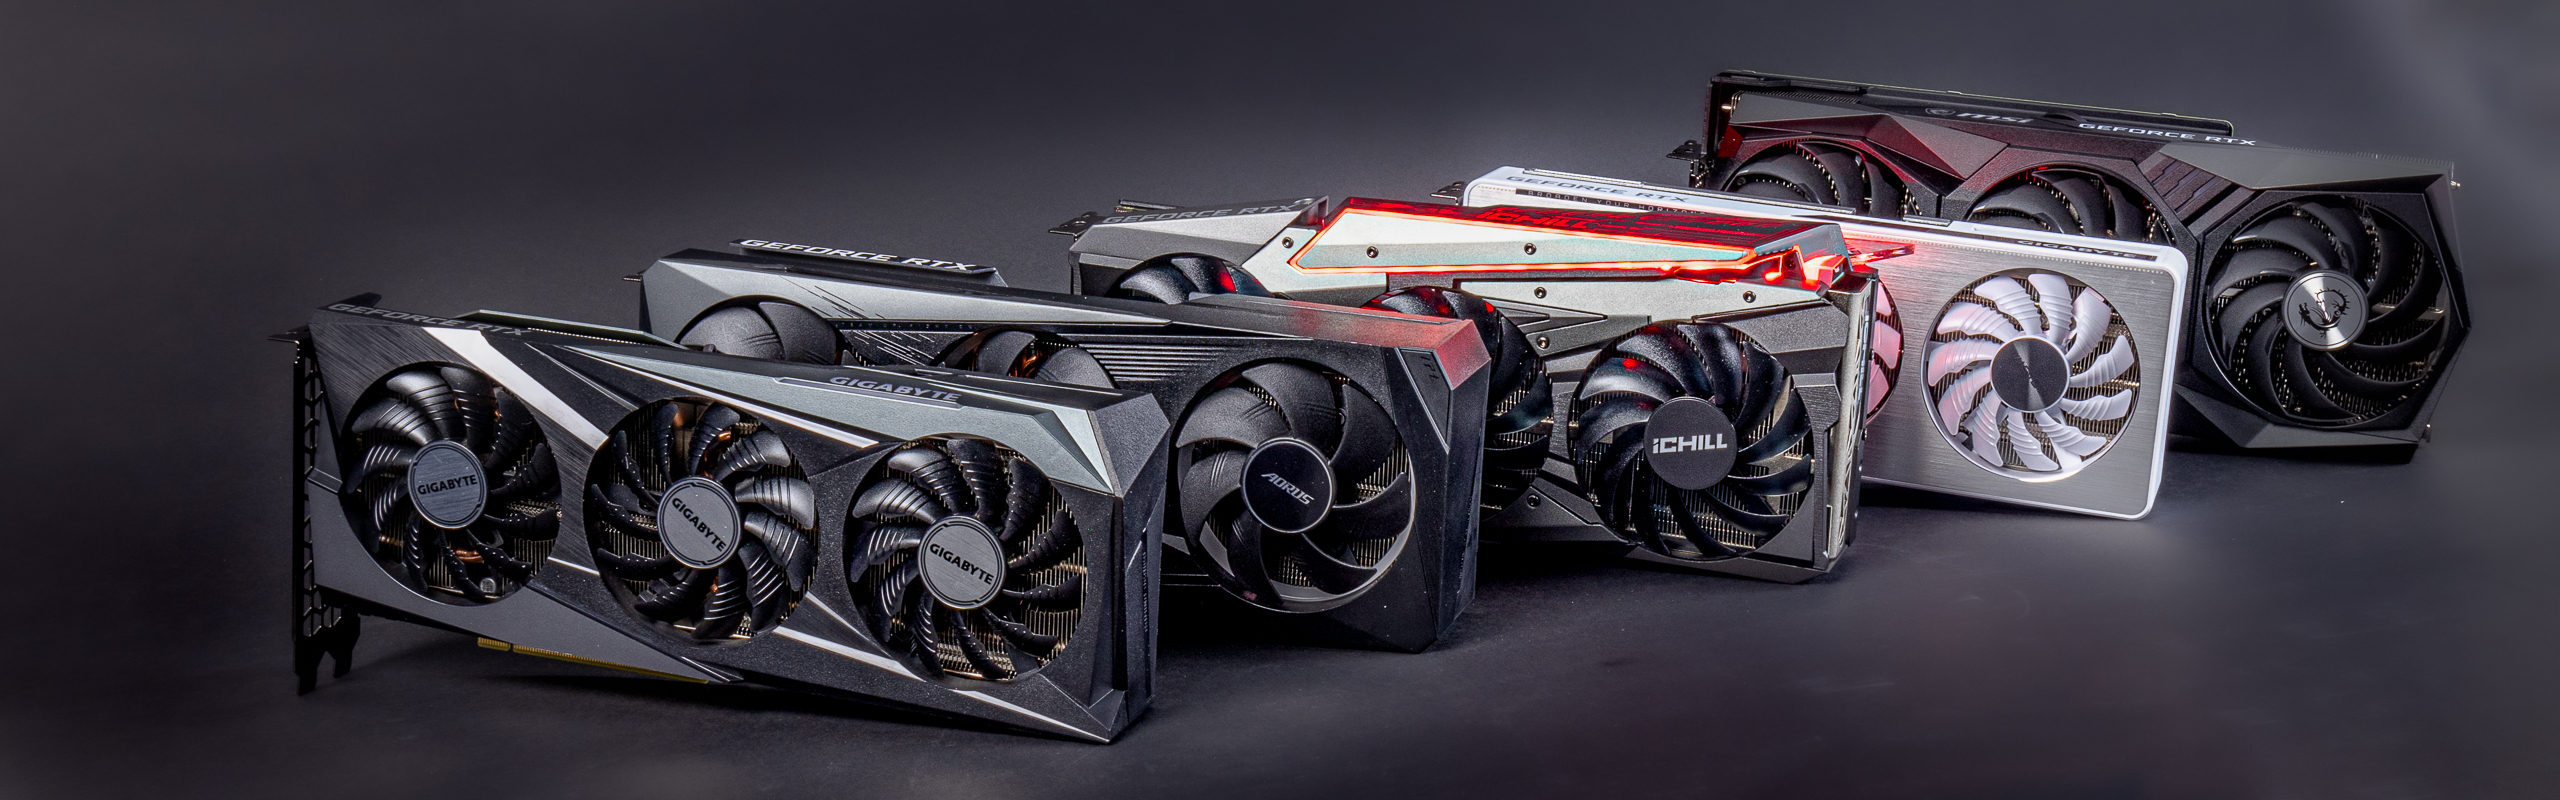 Five Briefs of RTX 3060 - Introduction